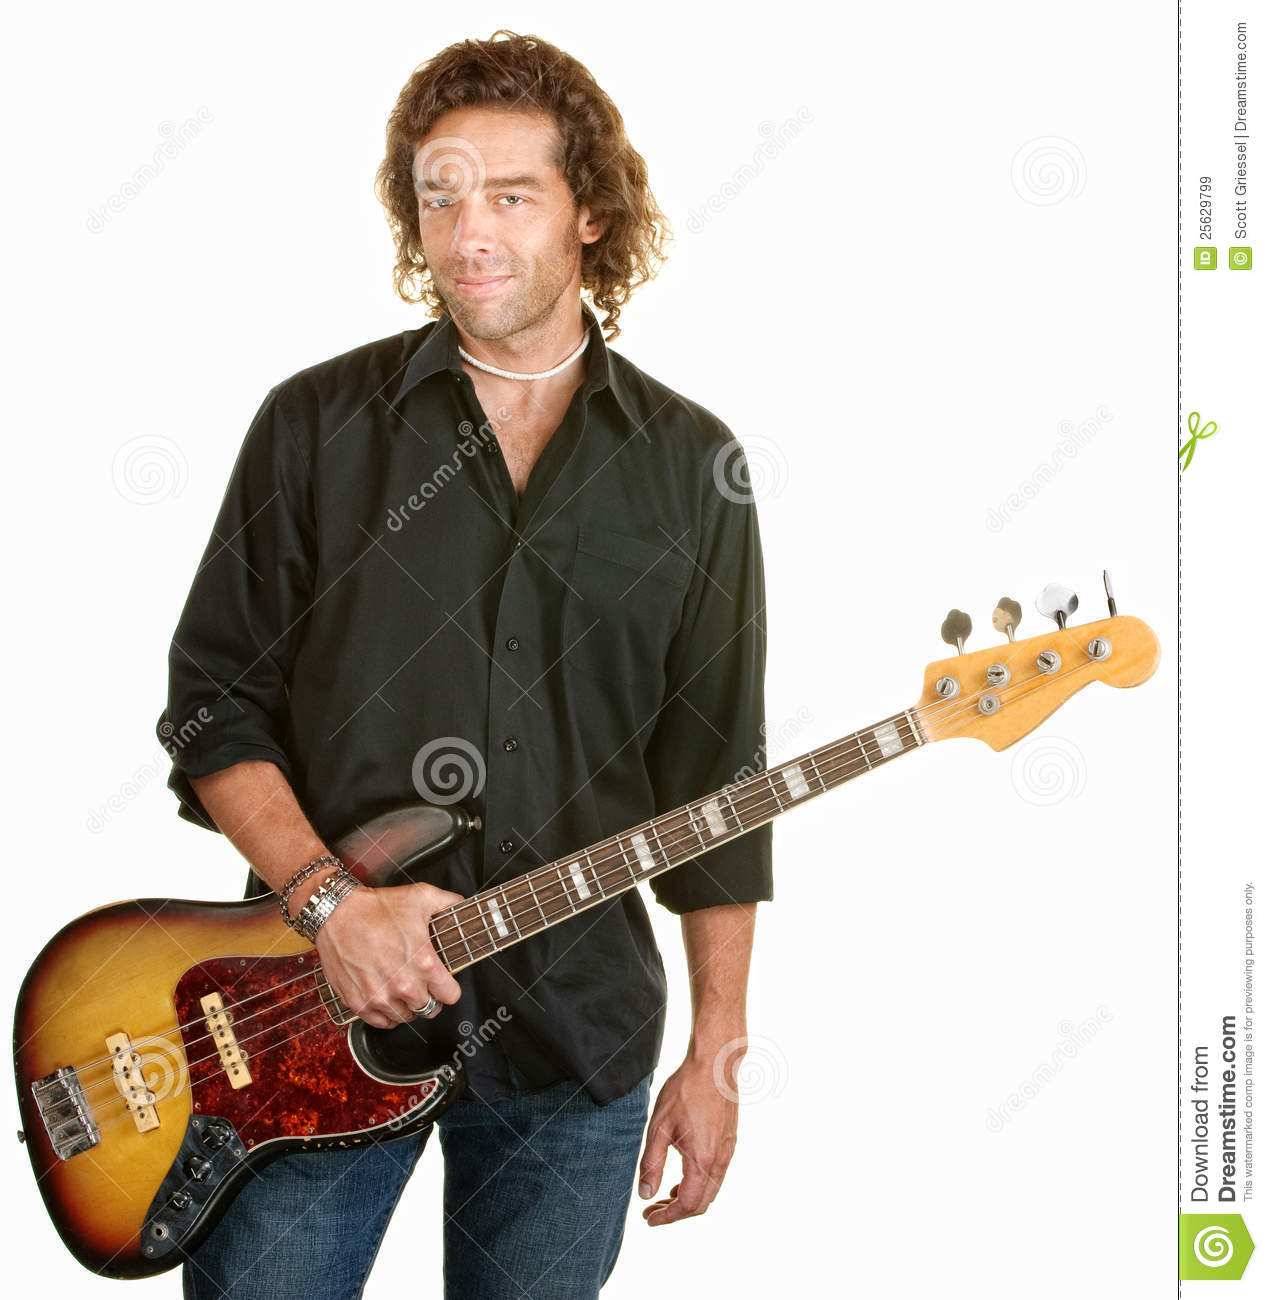 man with electric guitar royalty free stock images image 25629799. Black Bedroom Furniture Sets. Home Design Ideas